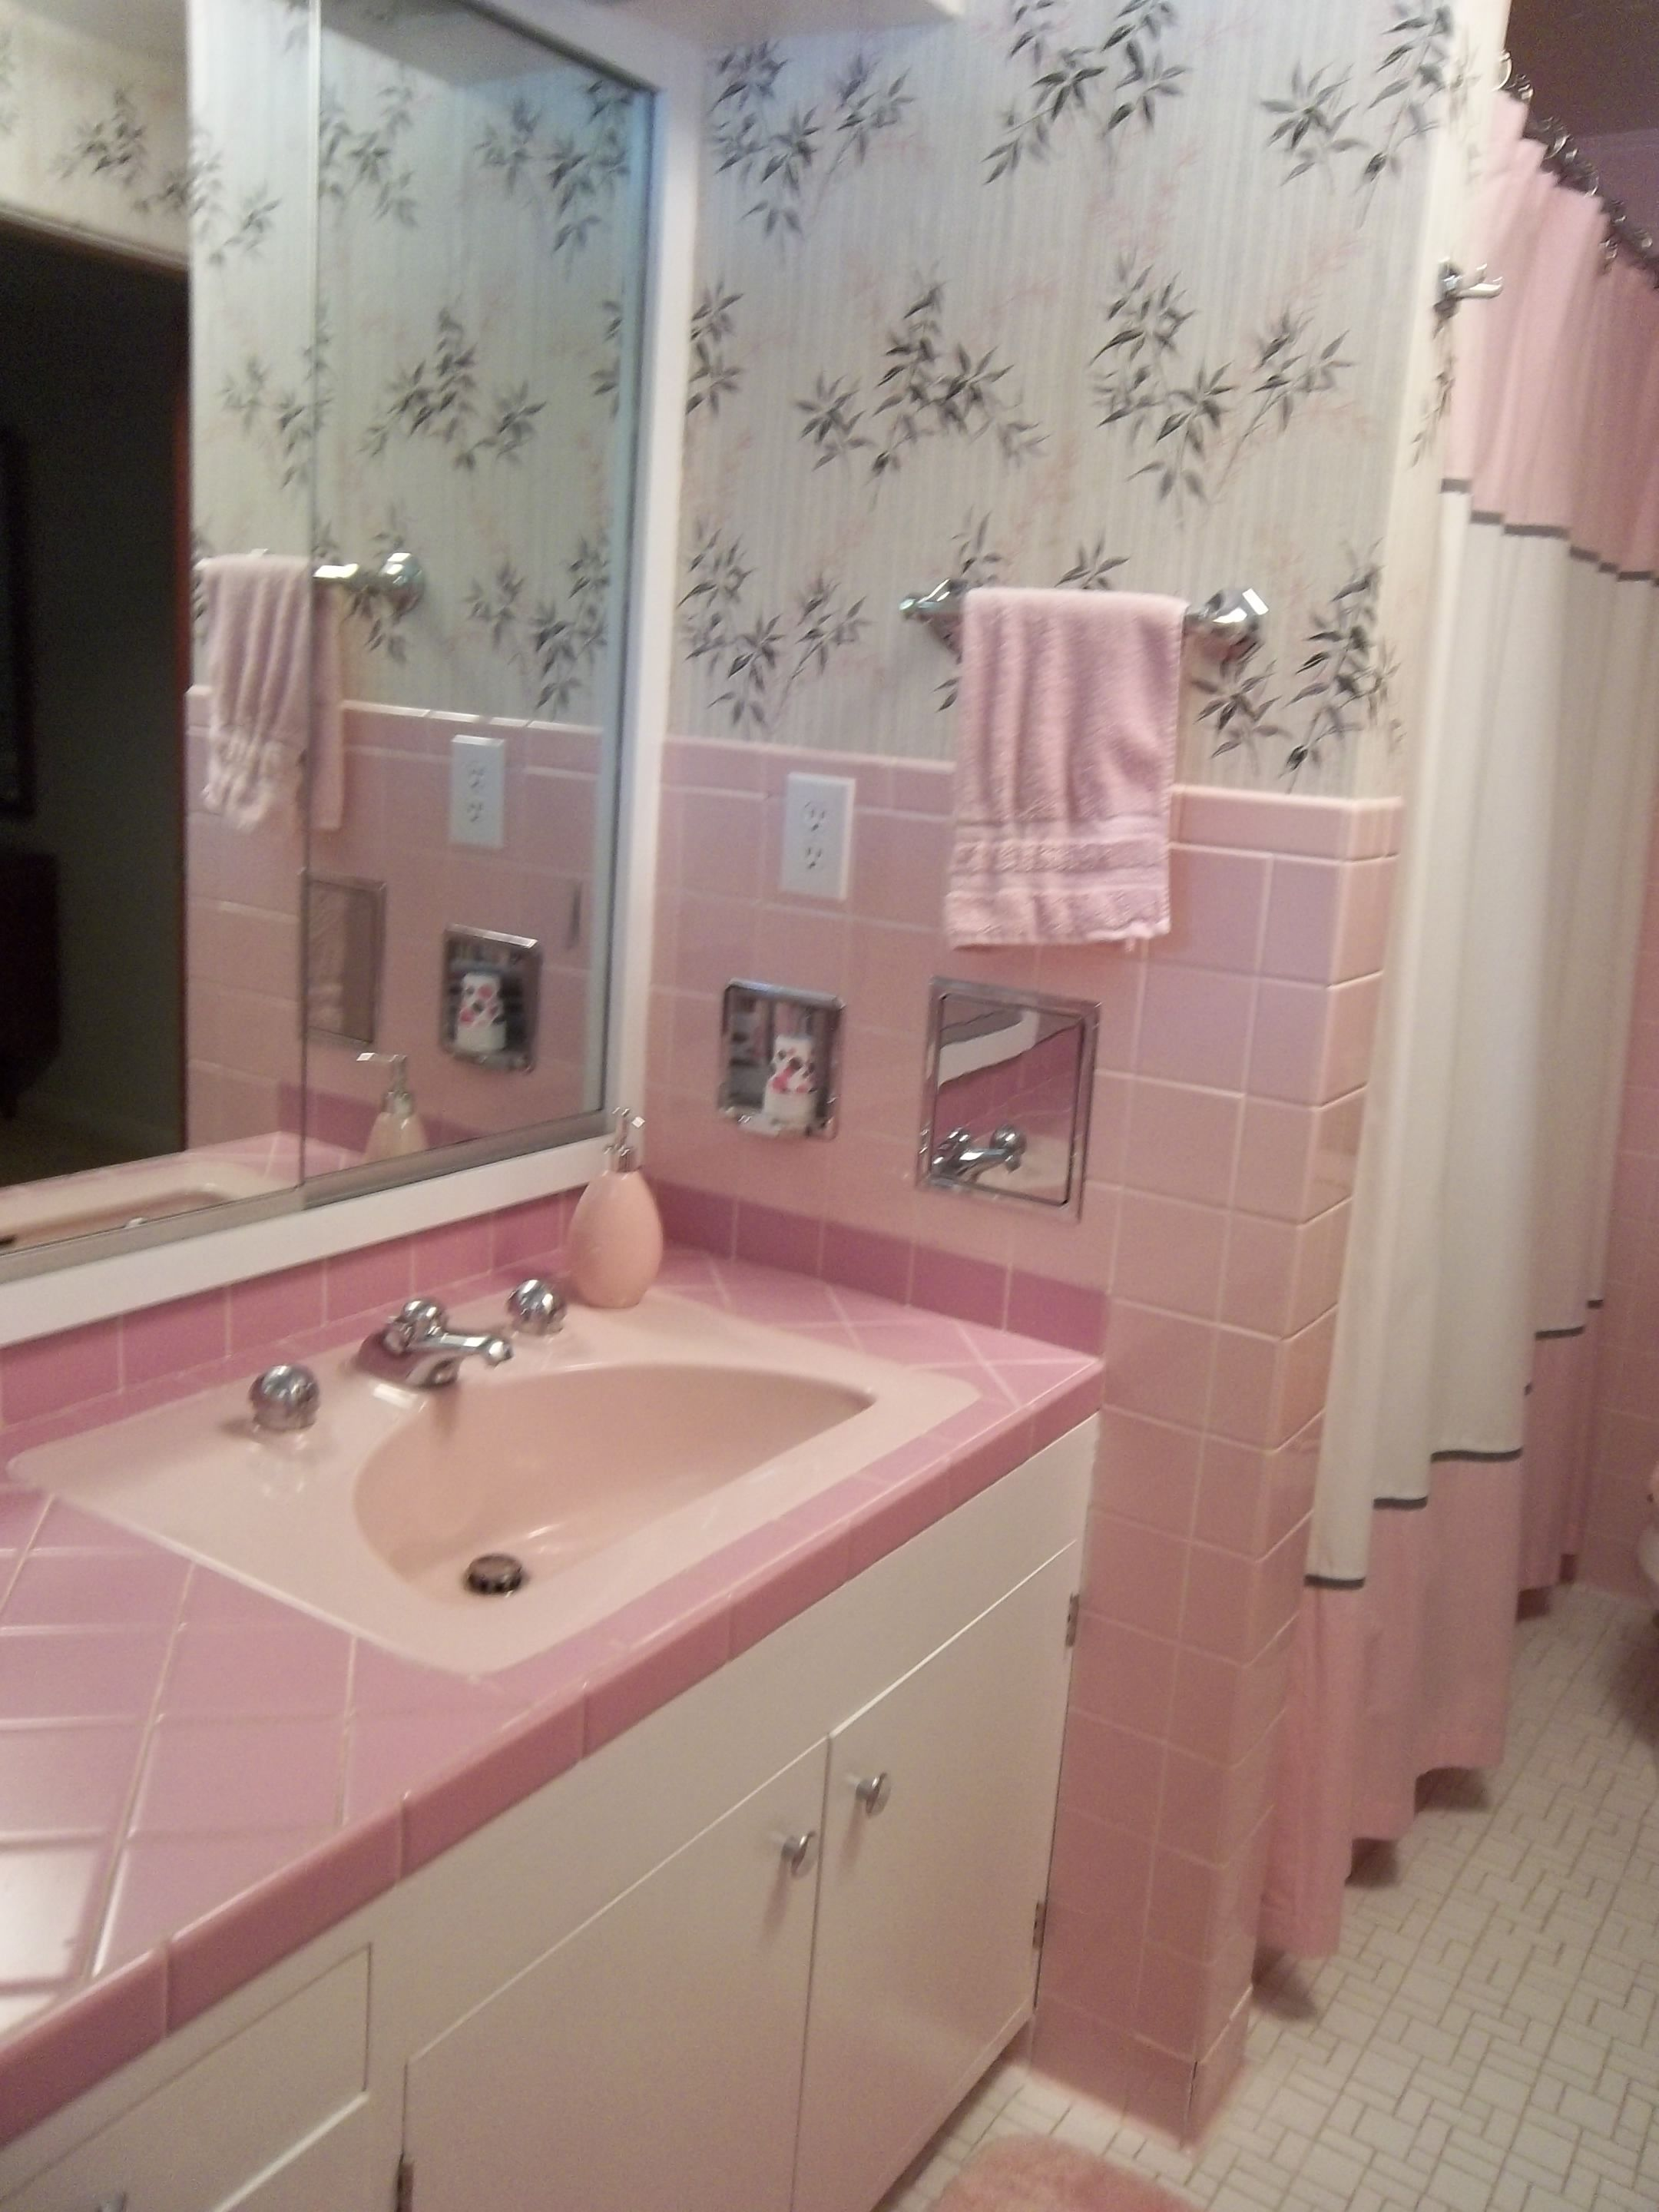 Retro Pink Bathroom Ideas Fascinating Vintage Bathroom Tile  171 Photos Of Readers' Bathroom Designs Review